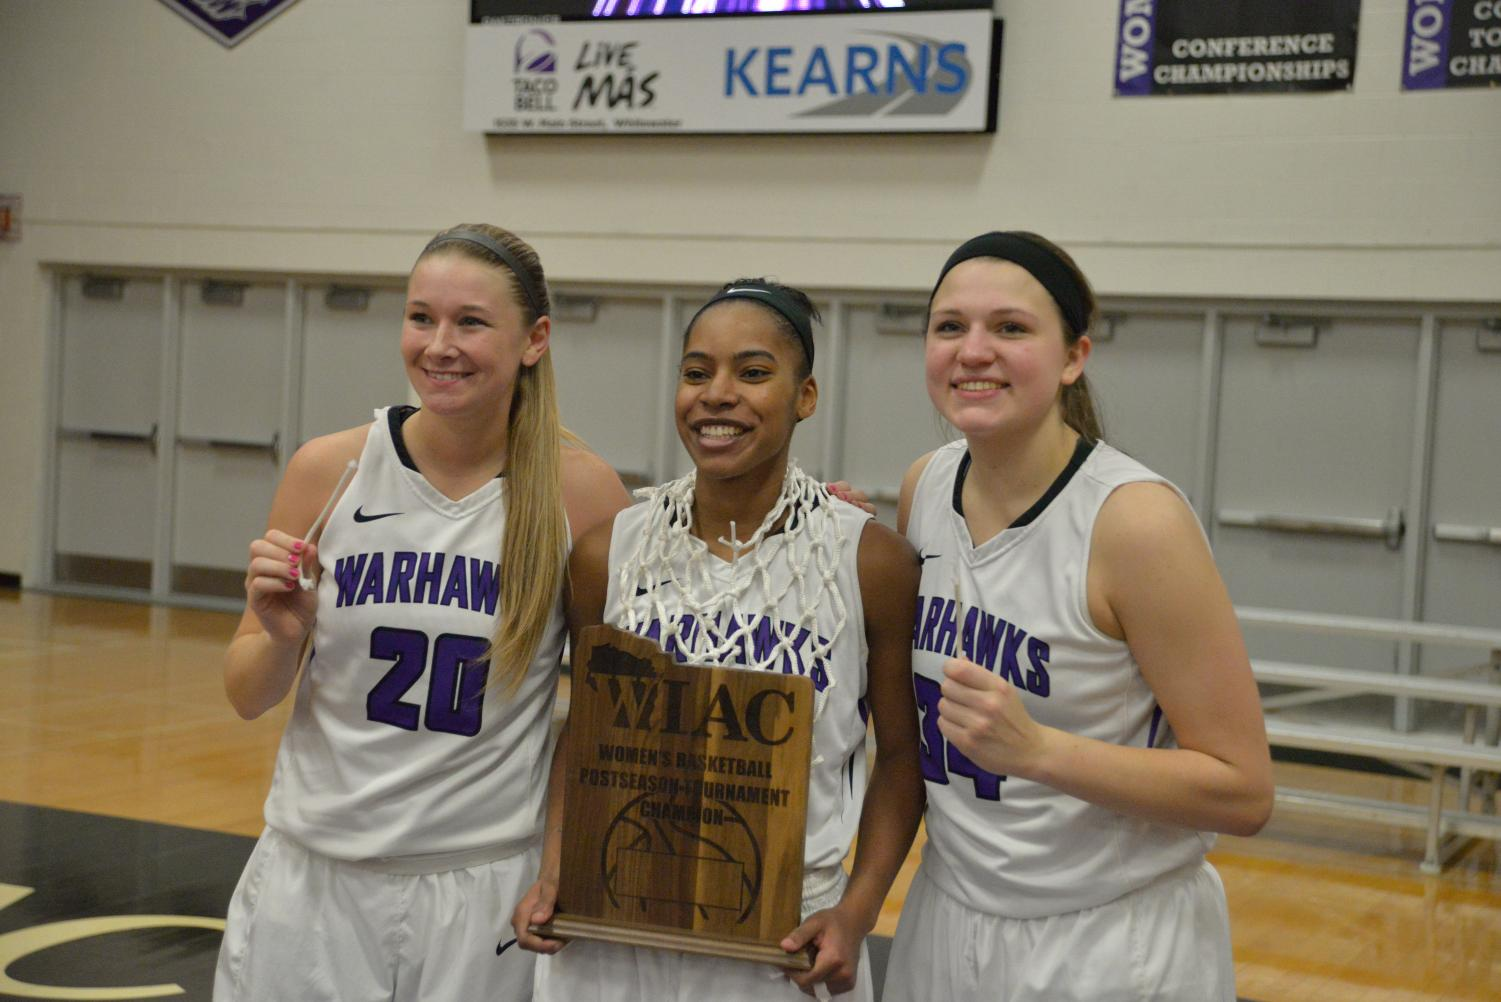 The senior trio of Brooke Trewyn, Malia Smith and Andrea Meinert (left-to-right) were all named first-team All-WIAC for the women's basketball team.